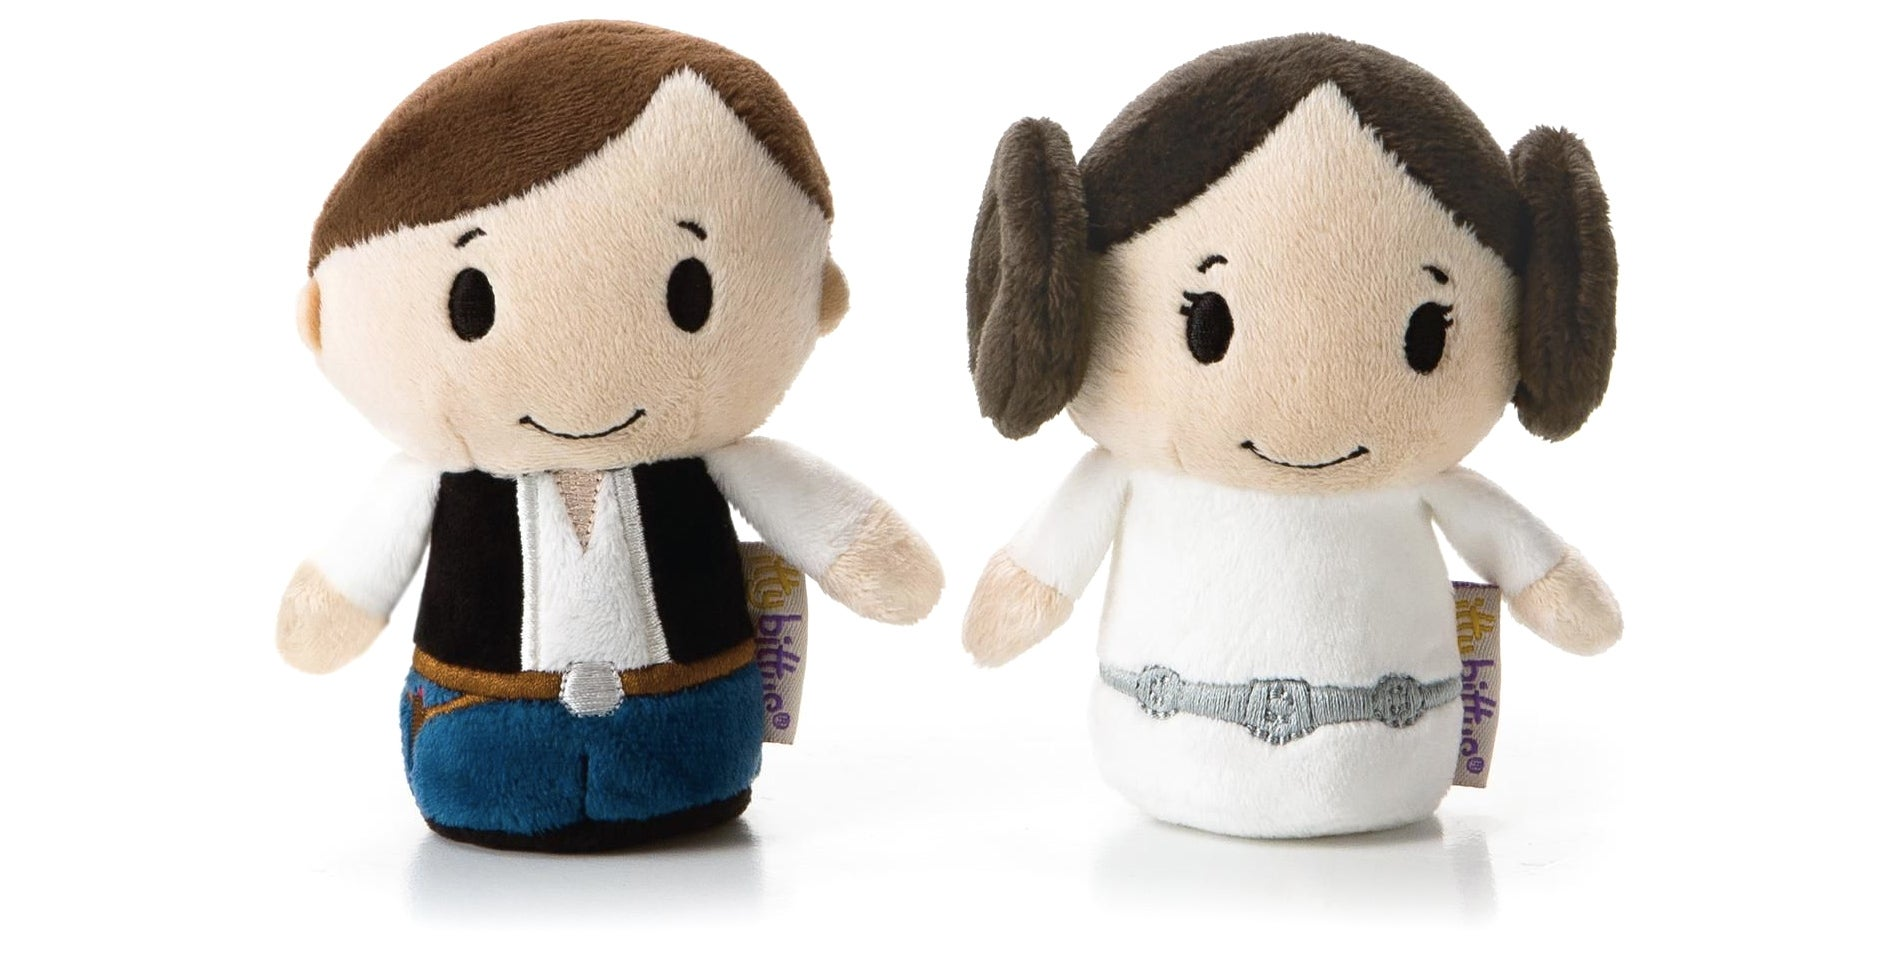 Hallmark Made Star Wars Toys So Impossibly Cute Your Head Will Explode